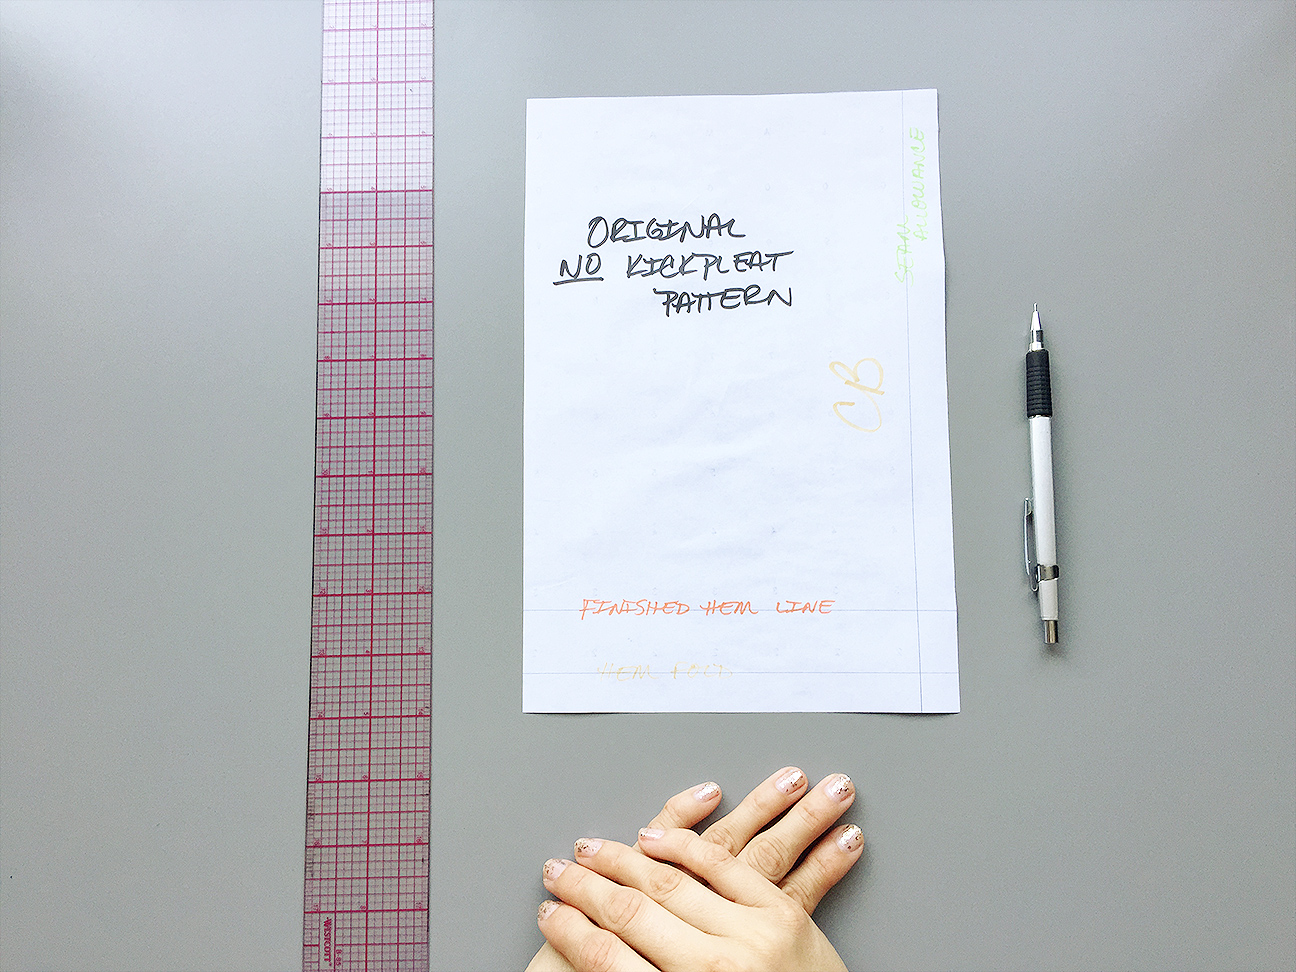 How to Draft a Kickpleat Pattern | @vintageontap